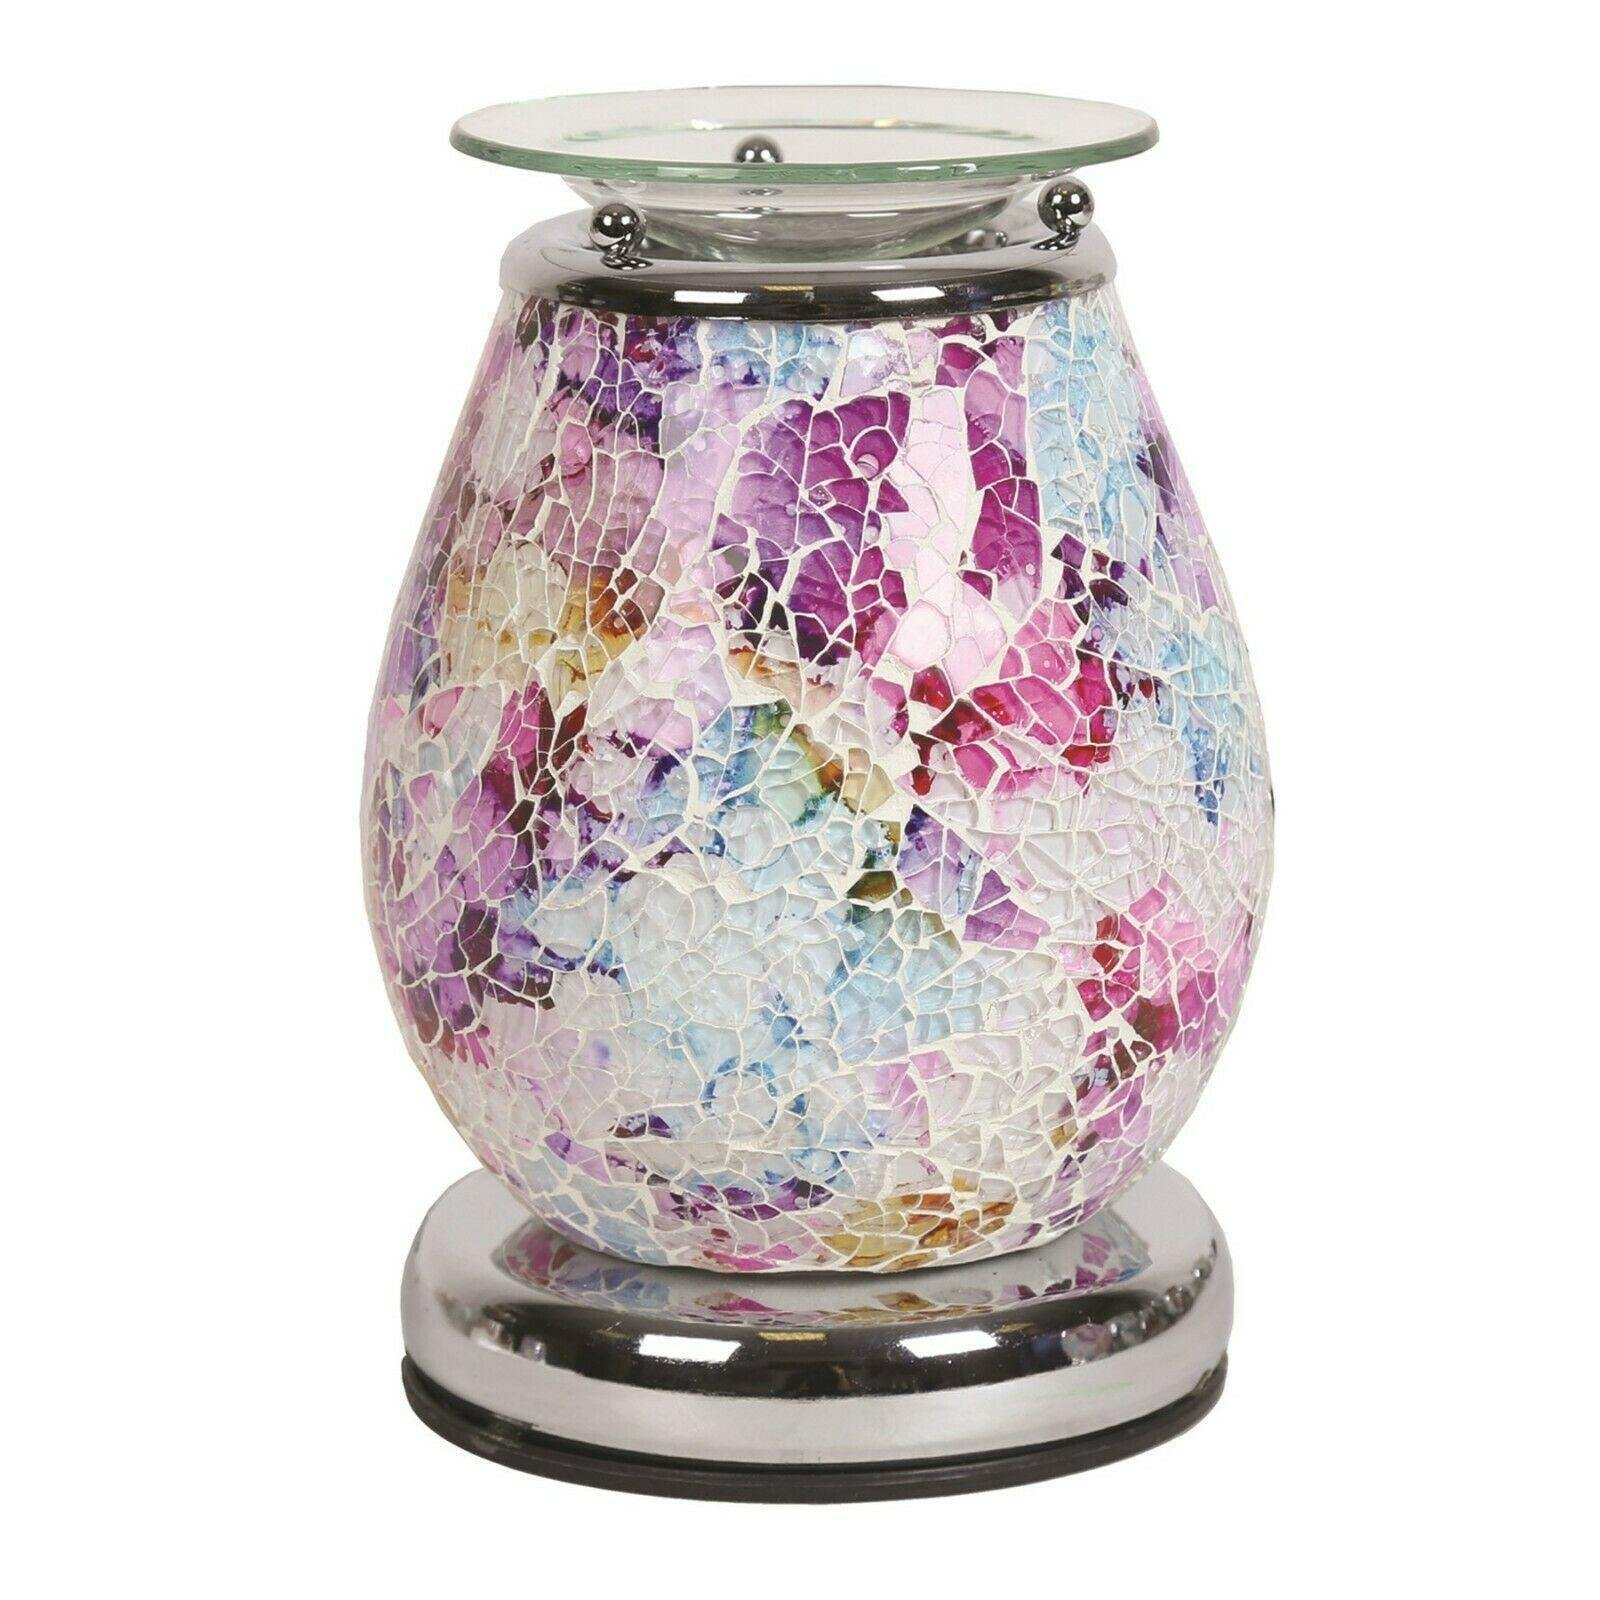 Aroma Accessories Apollo Mosaic Touch Electric Wax Melt Warmer - TOSYS Candles and Gifts